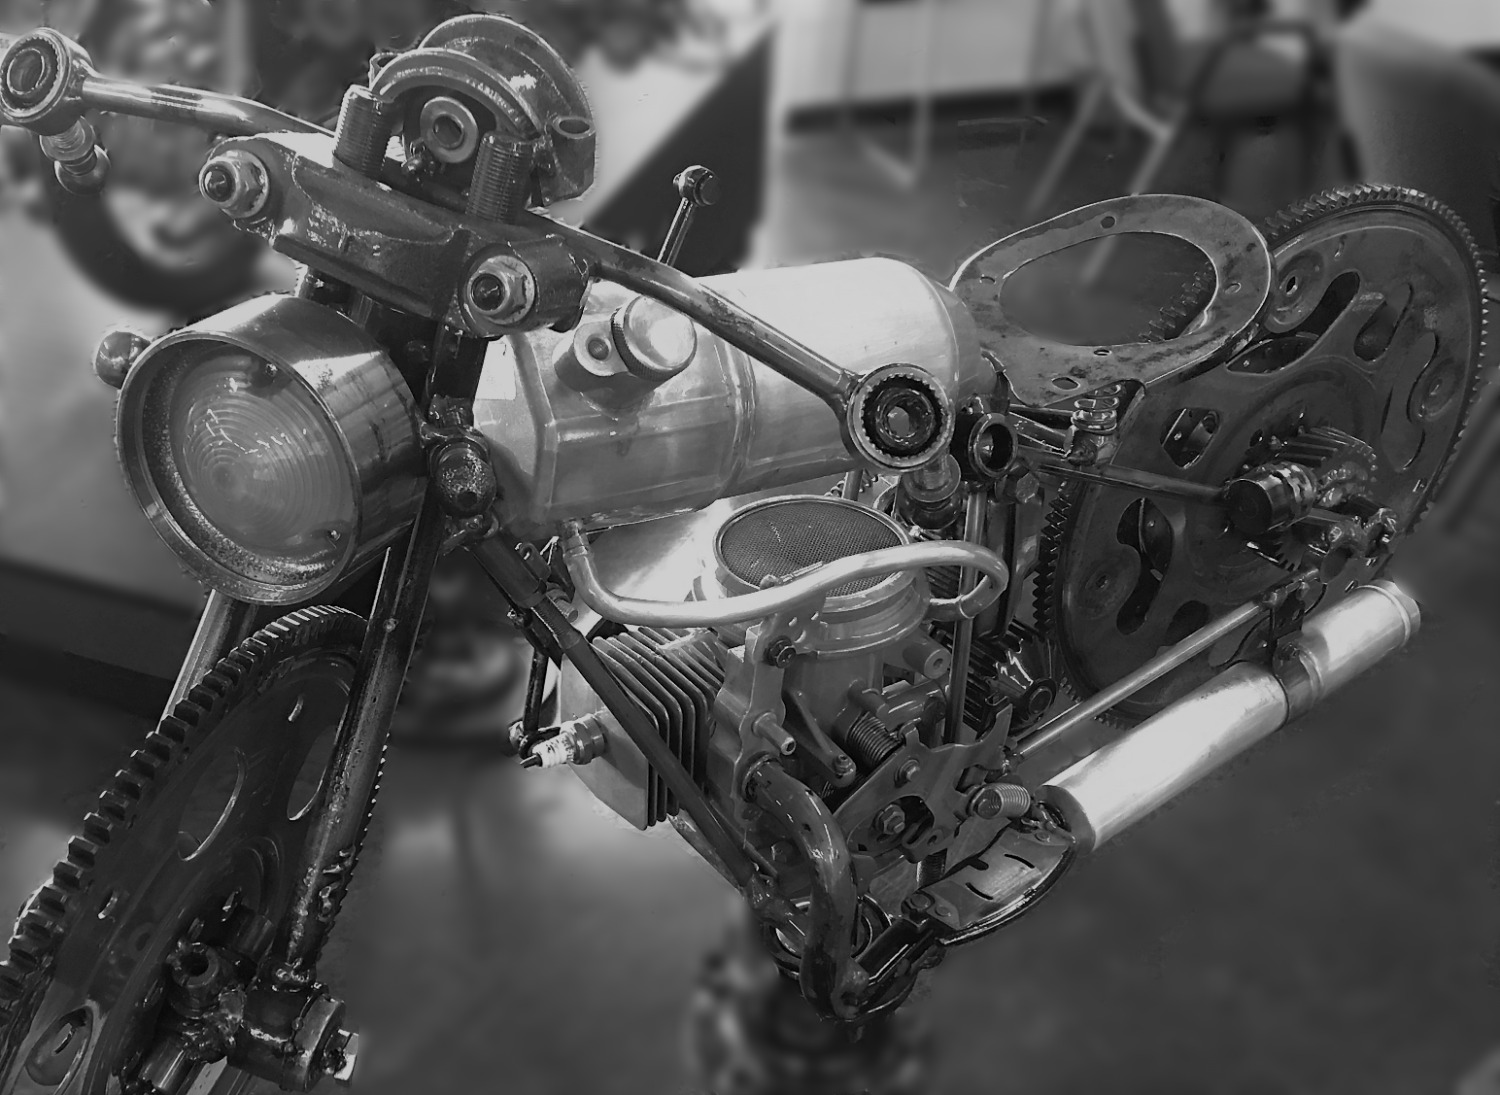 Motorcycle #1